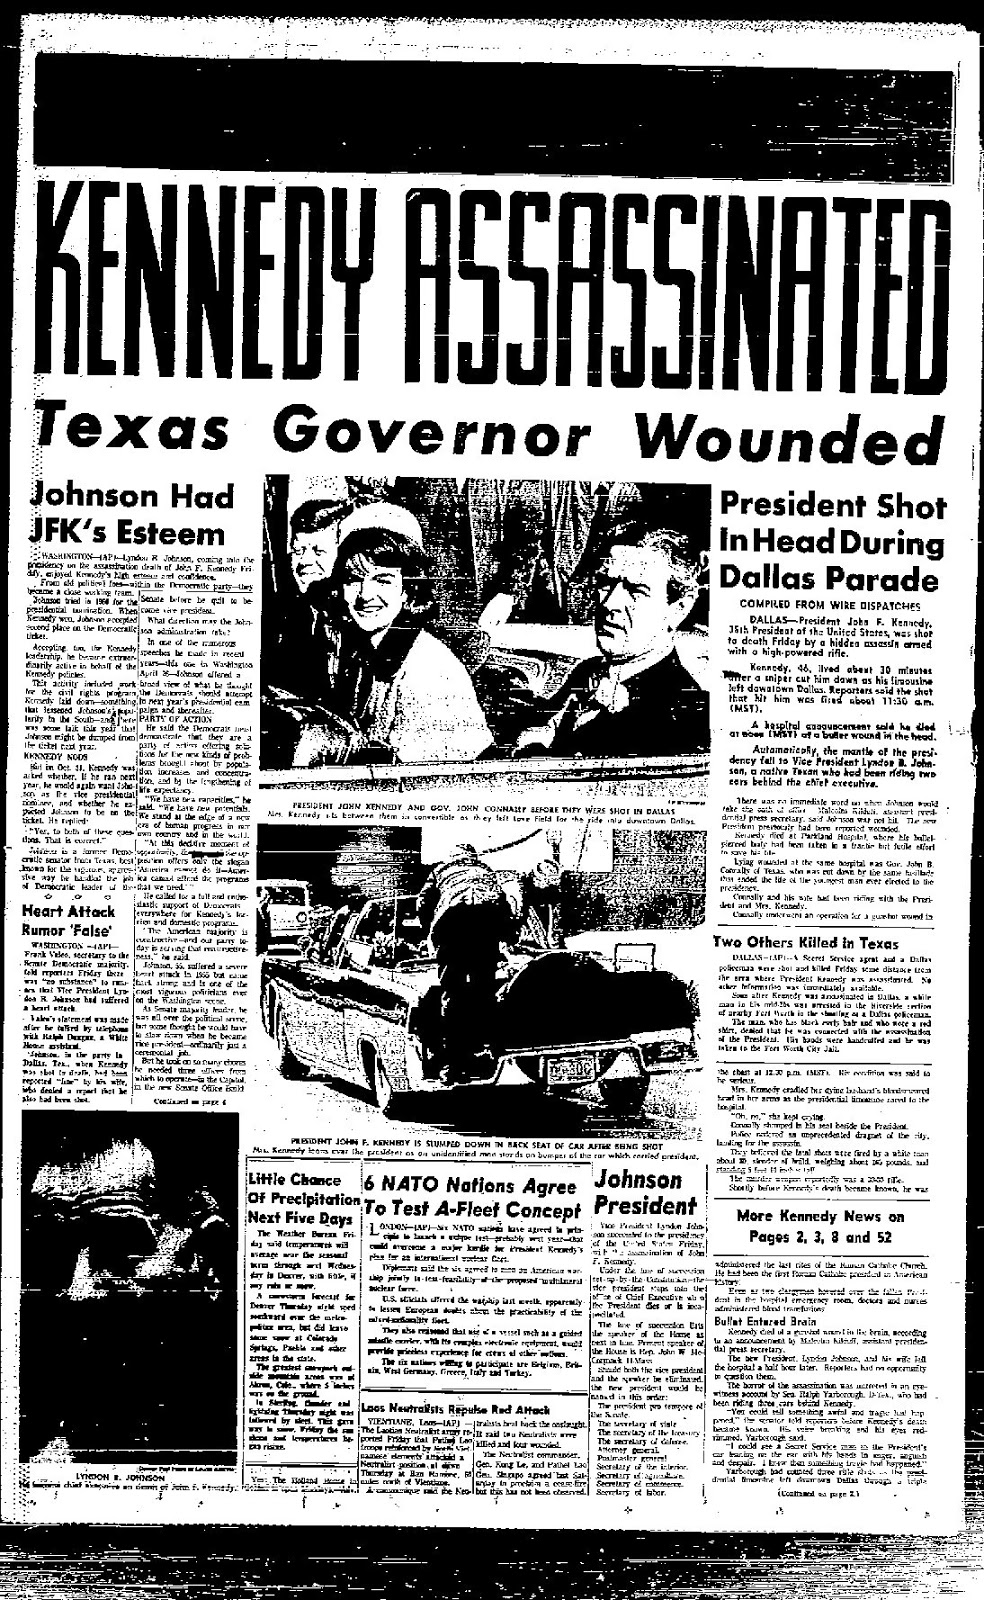 The front page of the Denver Post on the day Kennedy was Assassinated